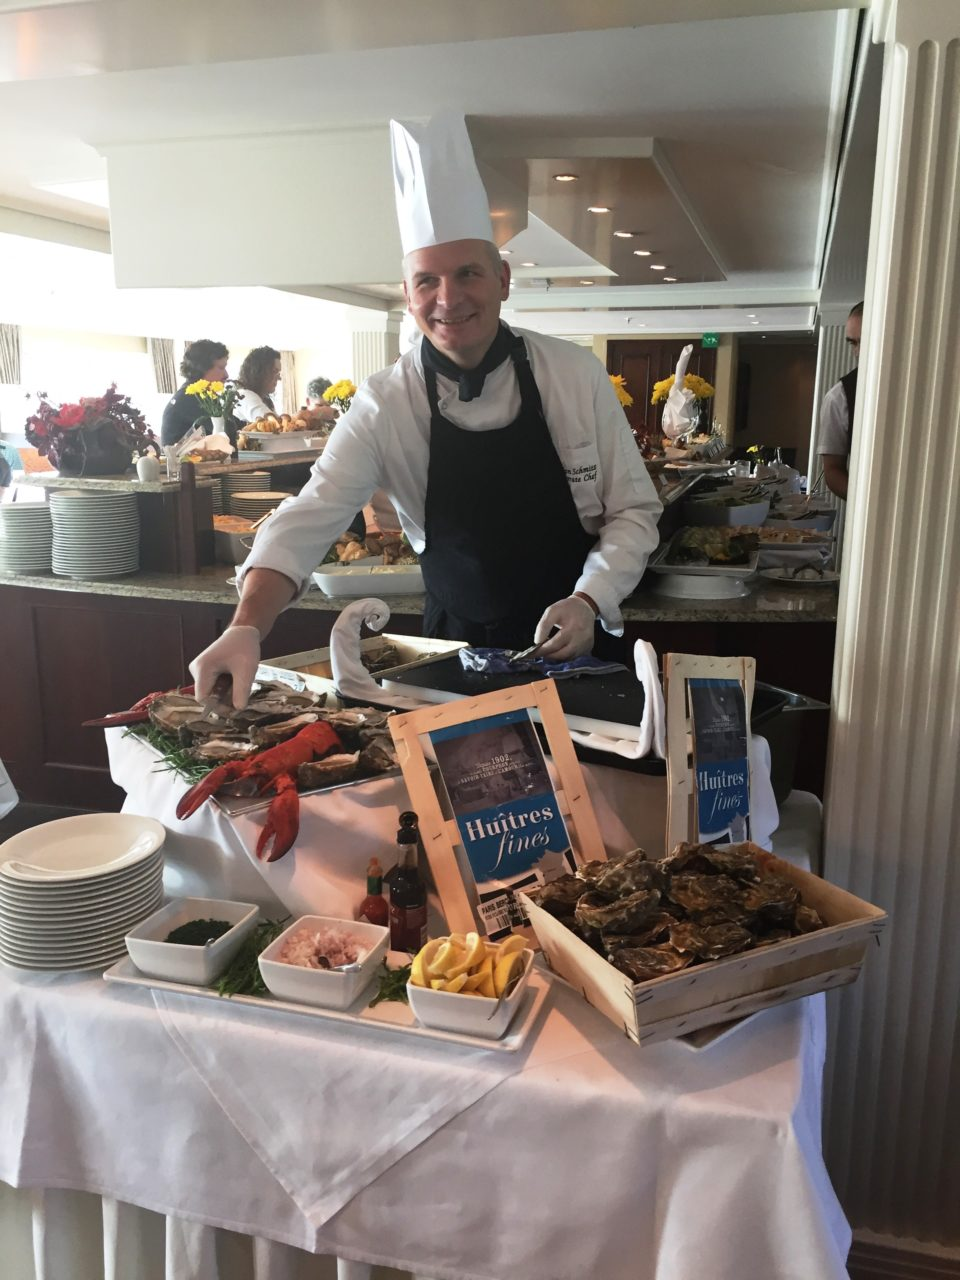 Oysters from Normandie at lunch onboard the AMALegro (Paris and Normandie AMAWaterways Cruise)